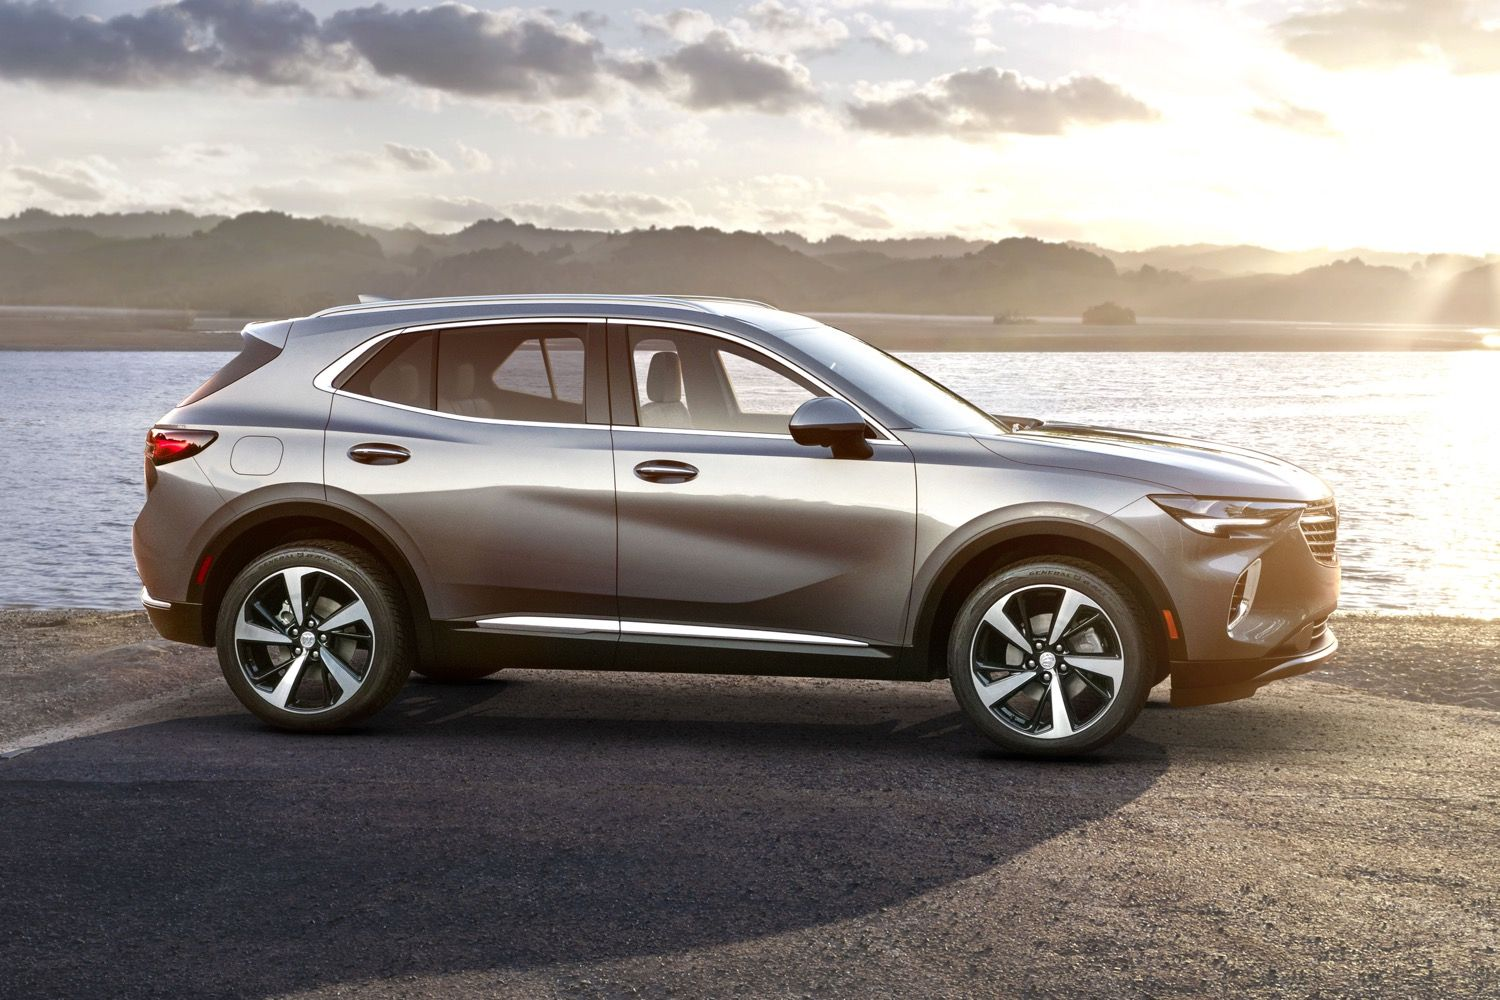 2021 Buick Envision Vs Last Gen Buick Envision Dimensions Gm Authority Buick Envision New Suv Buick